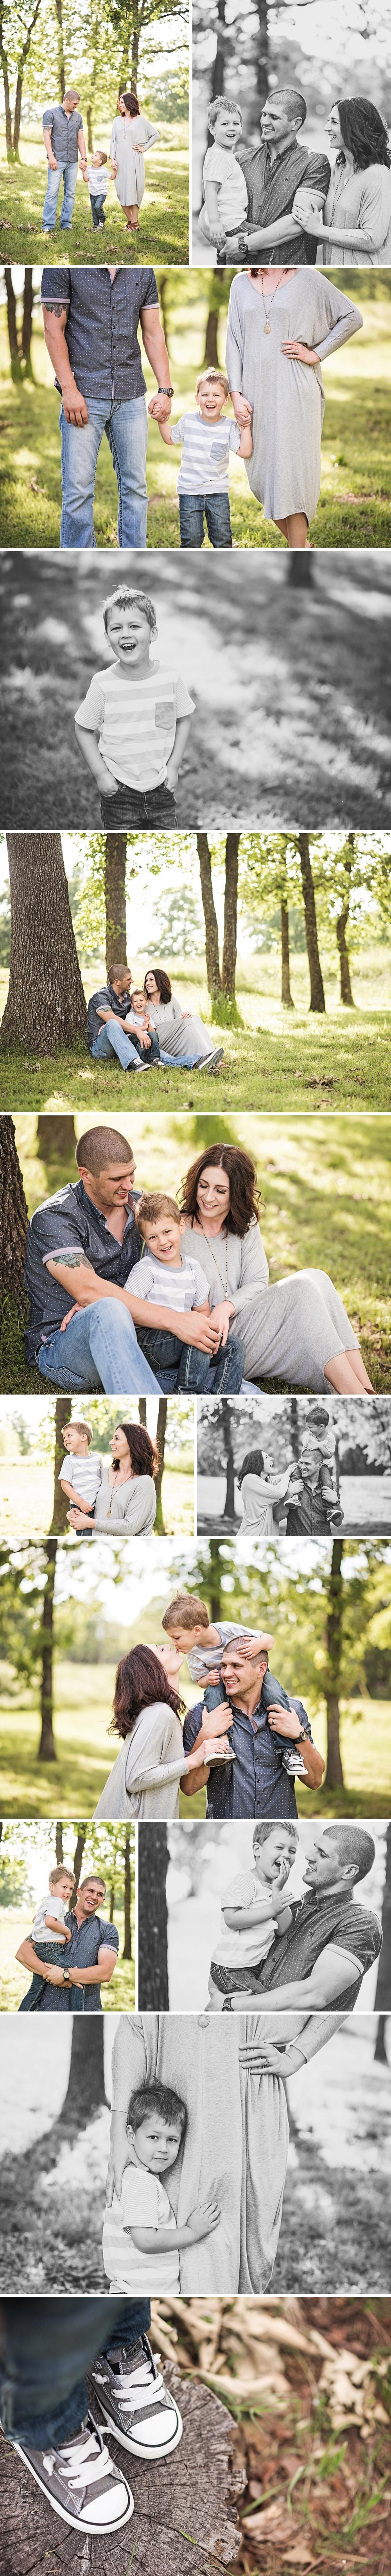 McKinney Family Photographer